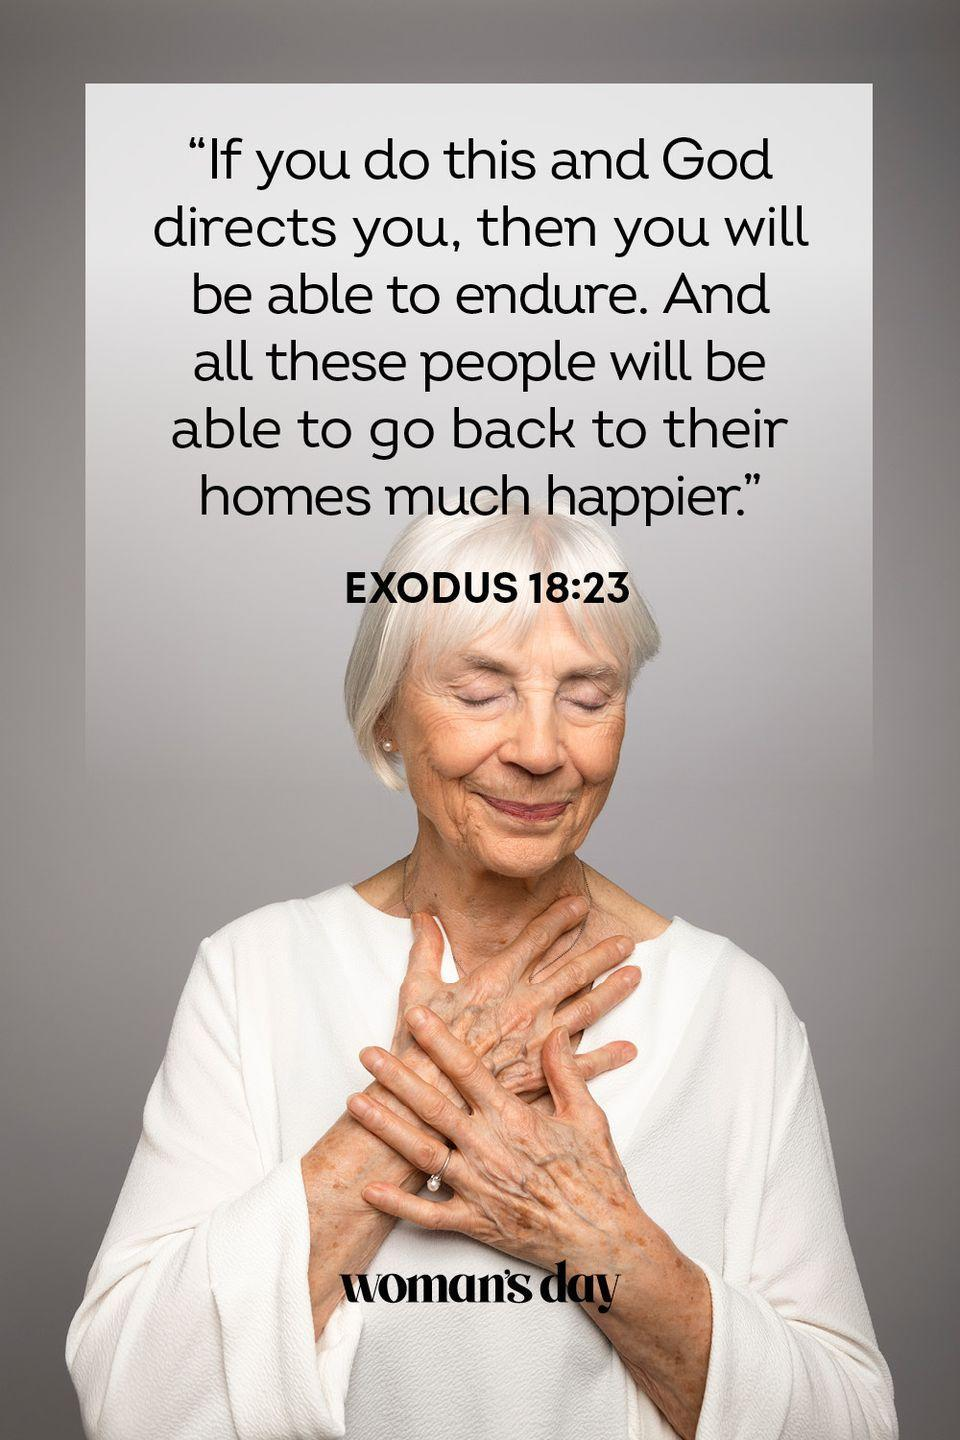 """<p>""""If you do this and God directs you, then you will be able to endure. And all these people will be able to go back to their homes much happier."""" — Exodus 18:23</p><p><strong>The Good News: </strong>None of us are traveling on the road to righteousness alone. God shapes our paths so that we are able to get through any challenges that may lie ahead.</p>"""